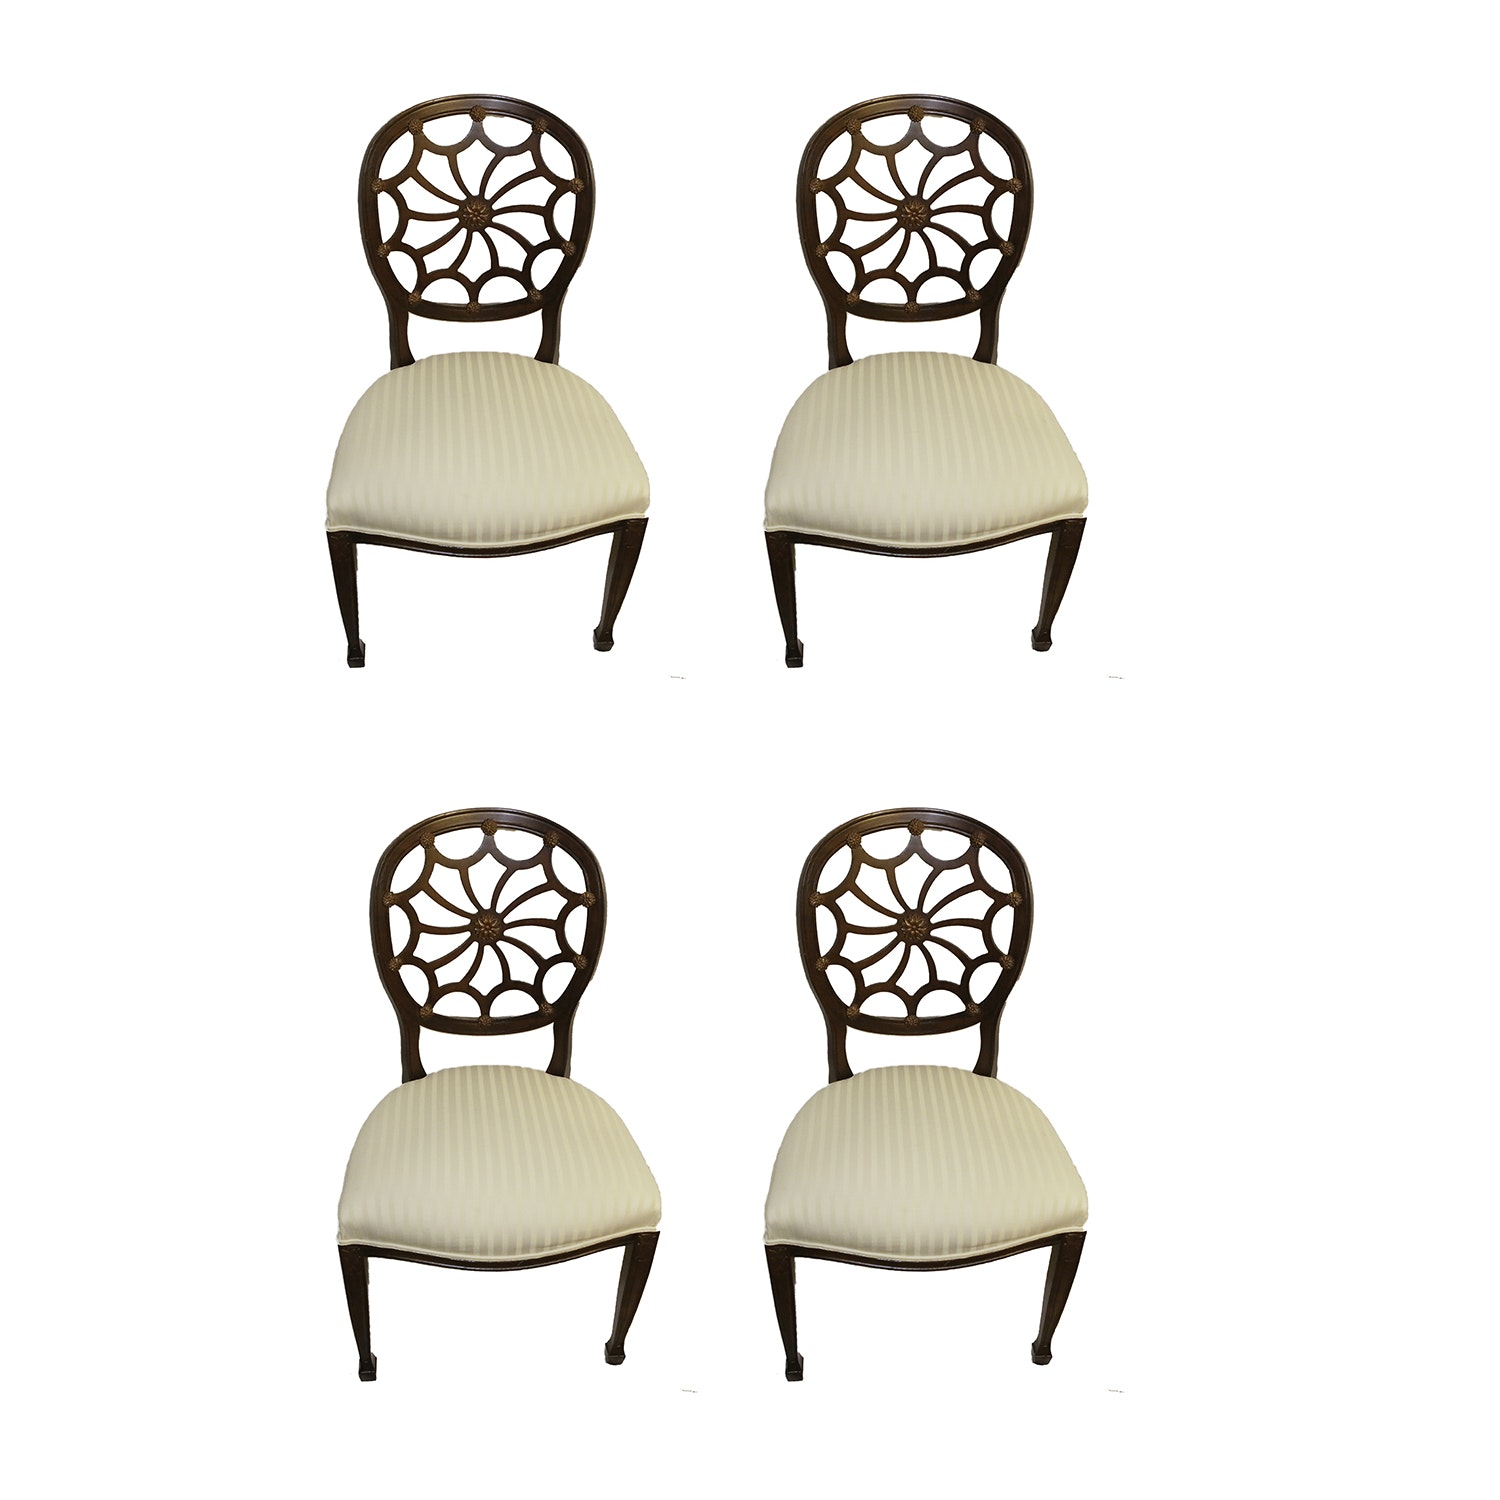 Set of Hepplewhite Style Spider Web Dining Chairs